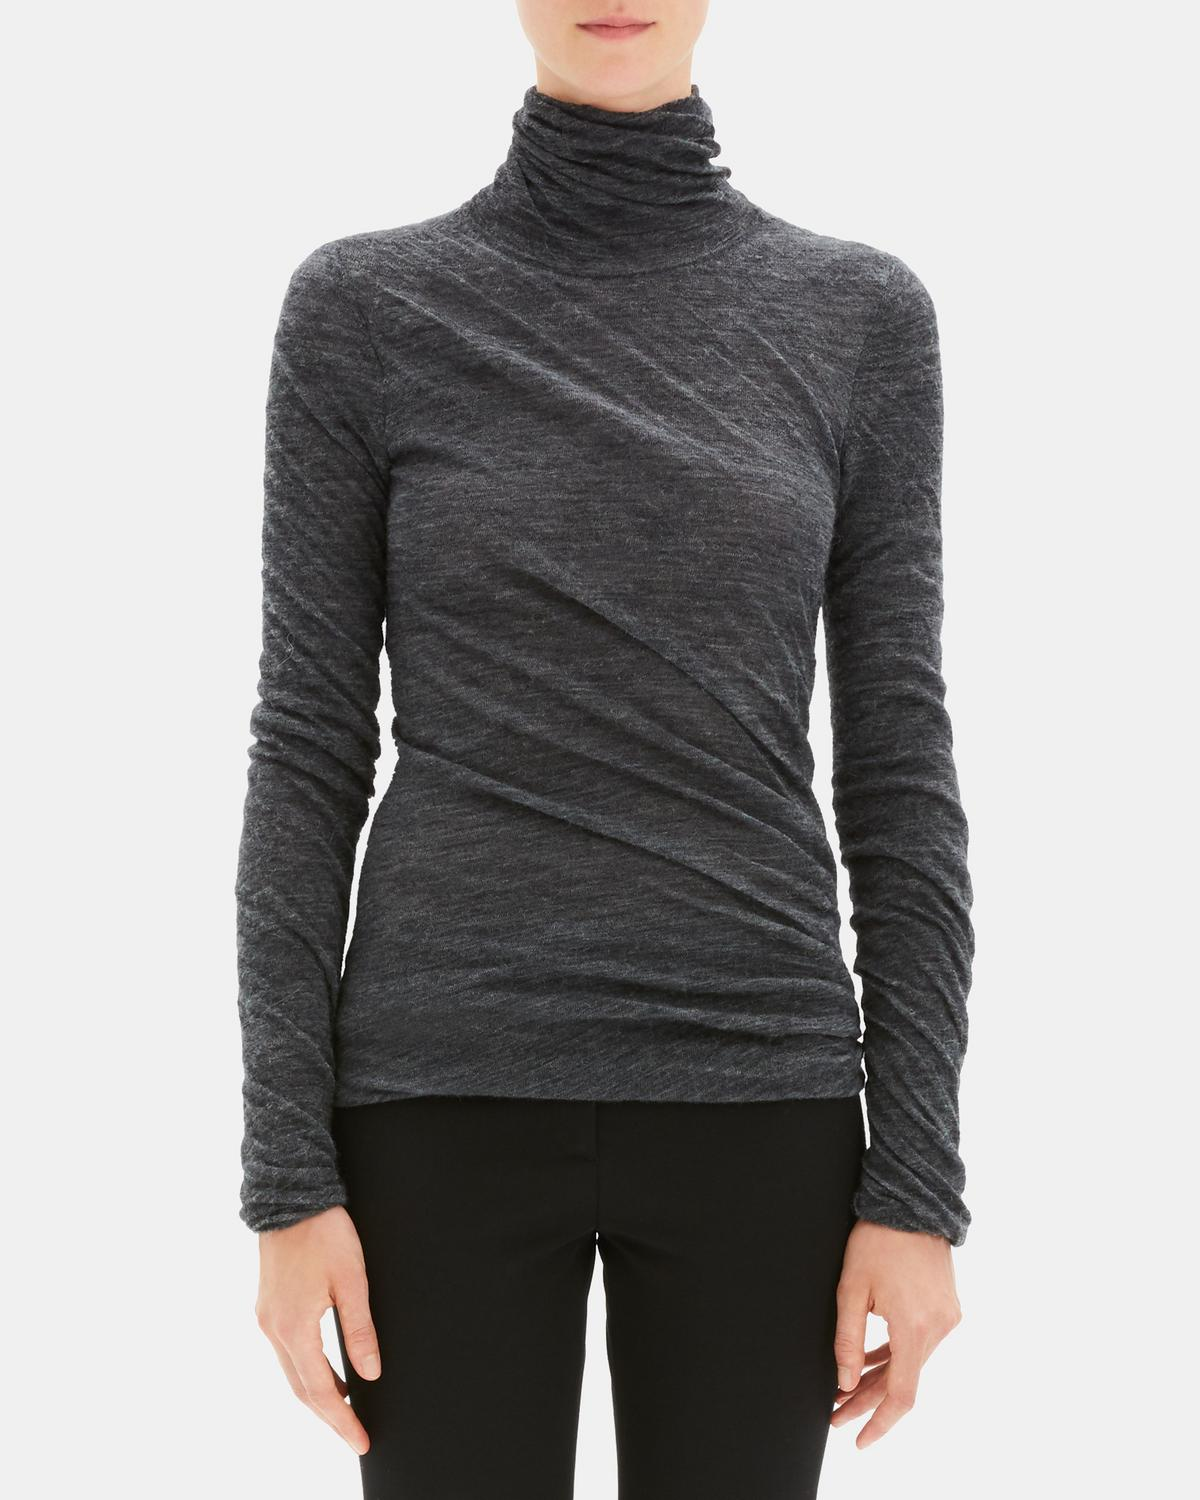 e1e0fe23dda Alpaca Blend Twisted Turtleneck